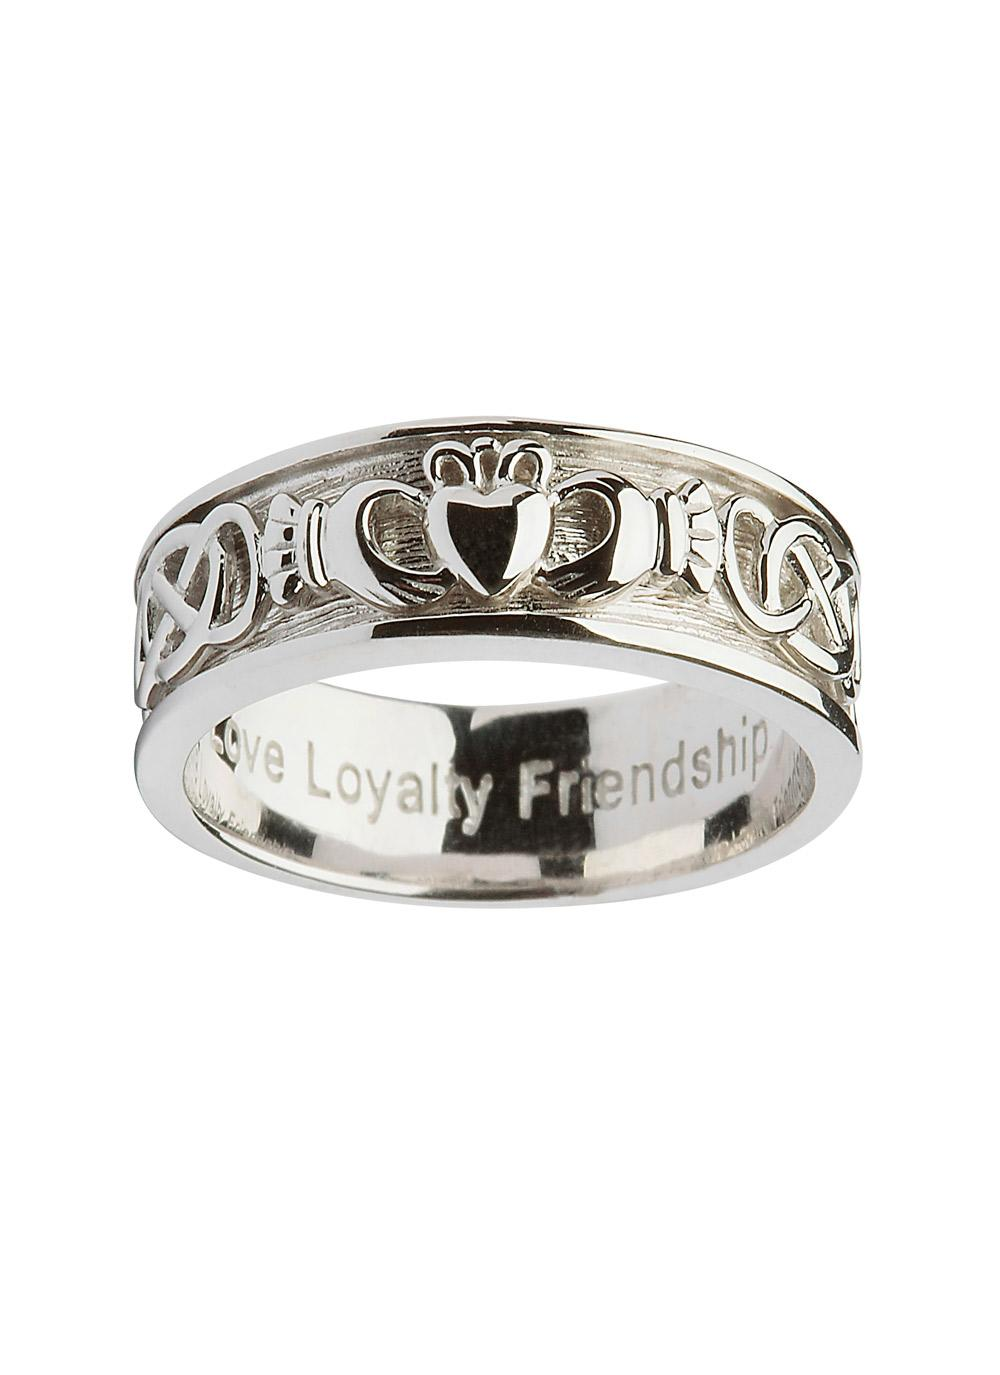 rings wedding bands collection blarney content s claddagh shop ladies